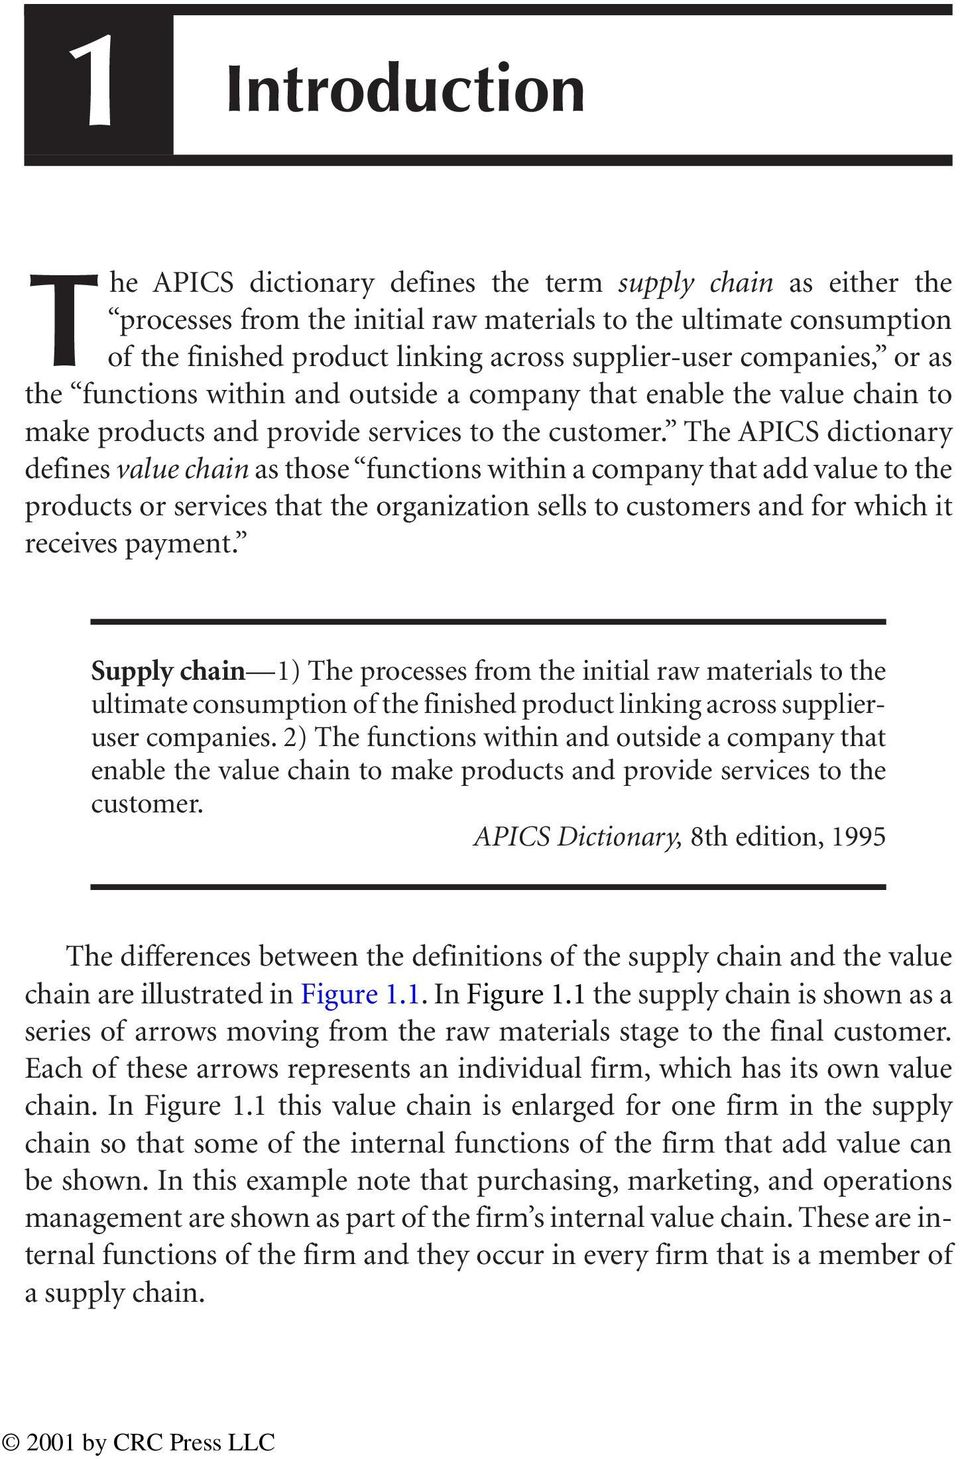 The APICS dictionary defines value chain as those functions within a company that add value to the products or services that the organization sells to customers and for which it receives payment.